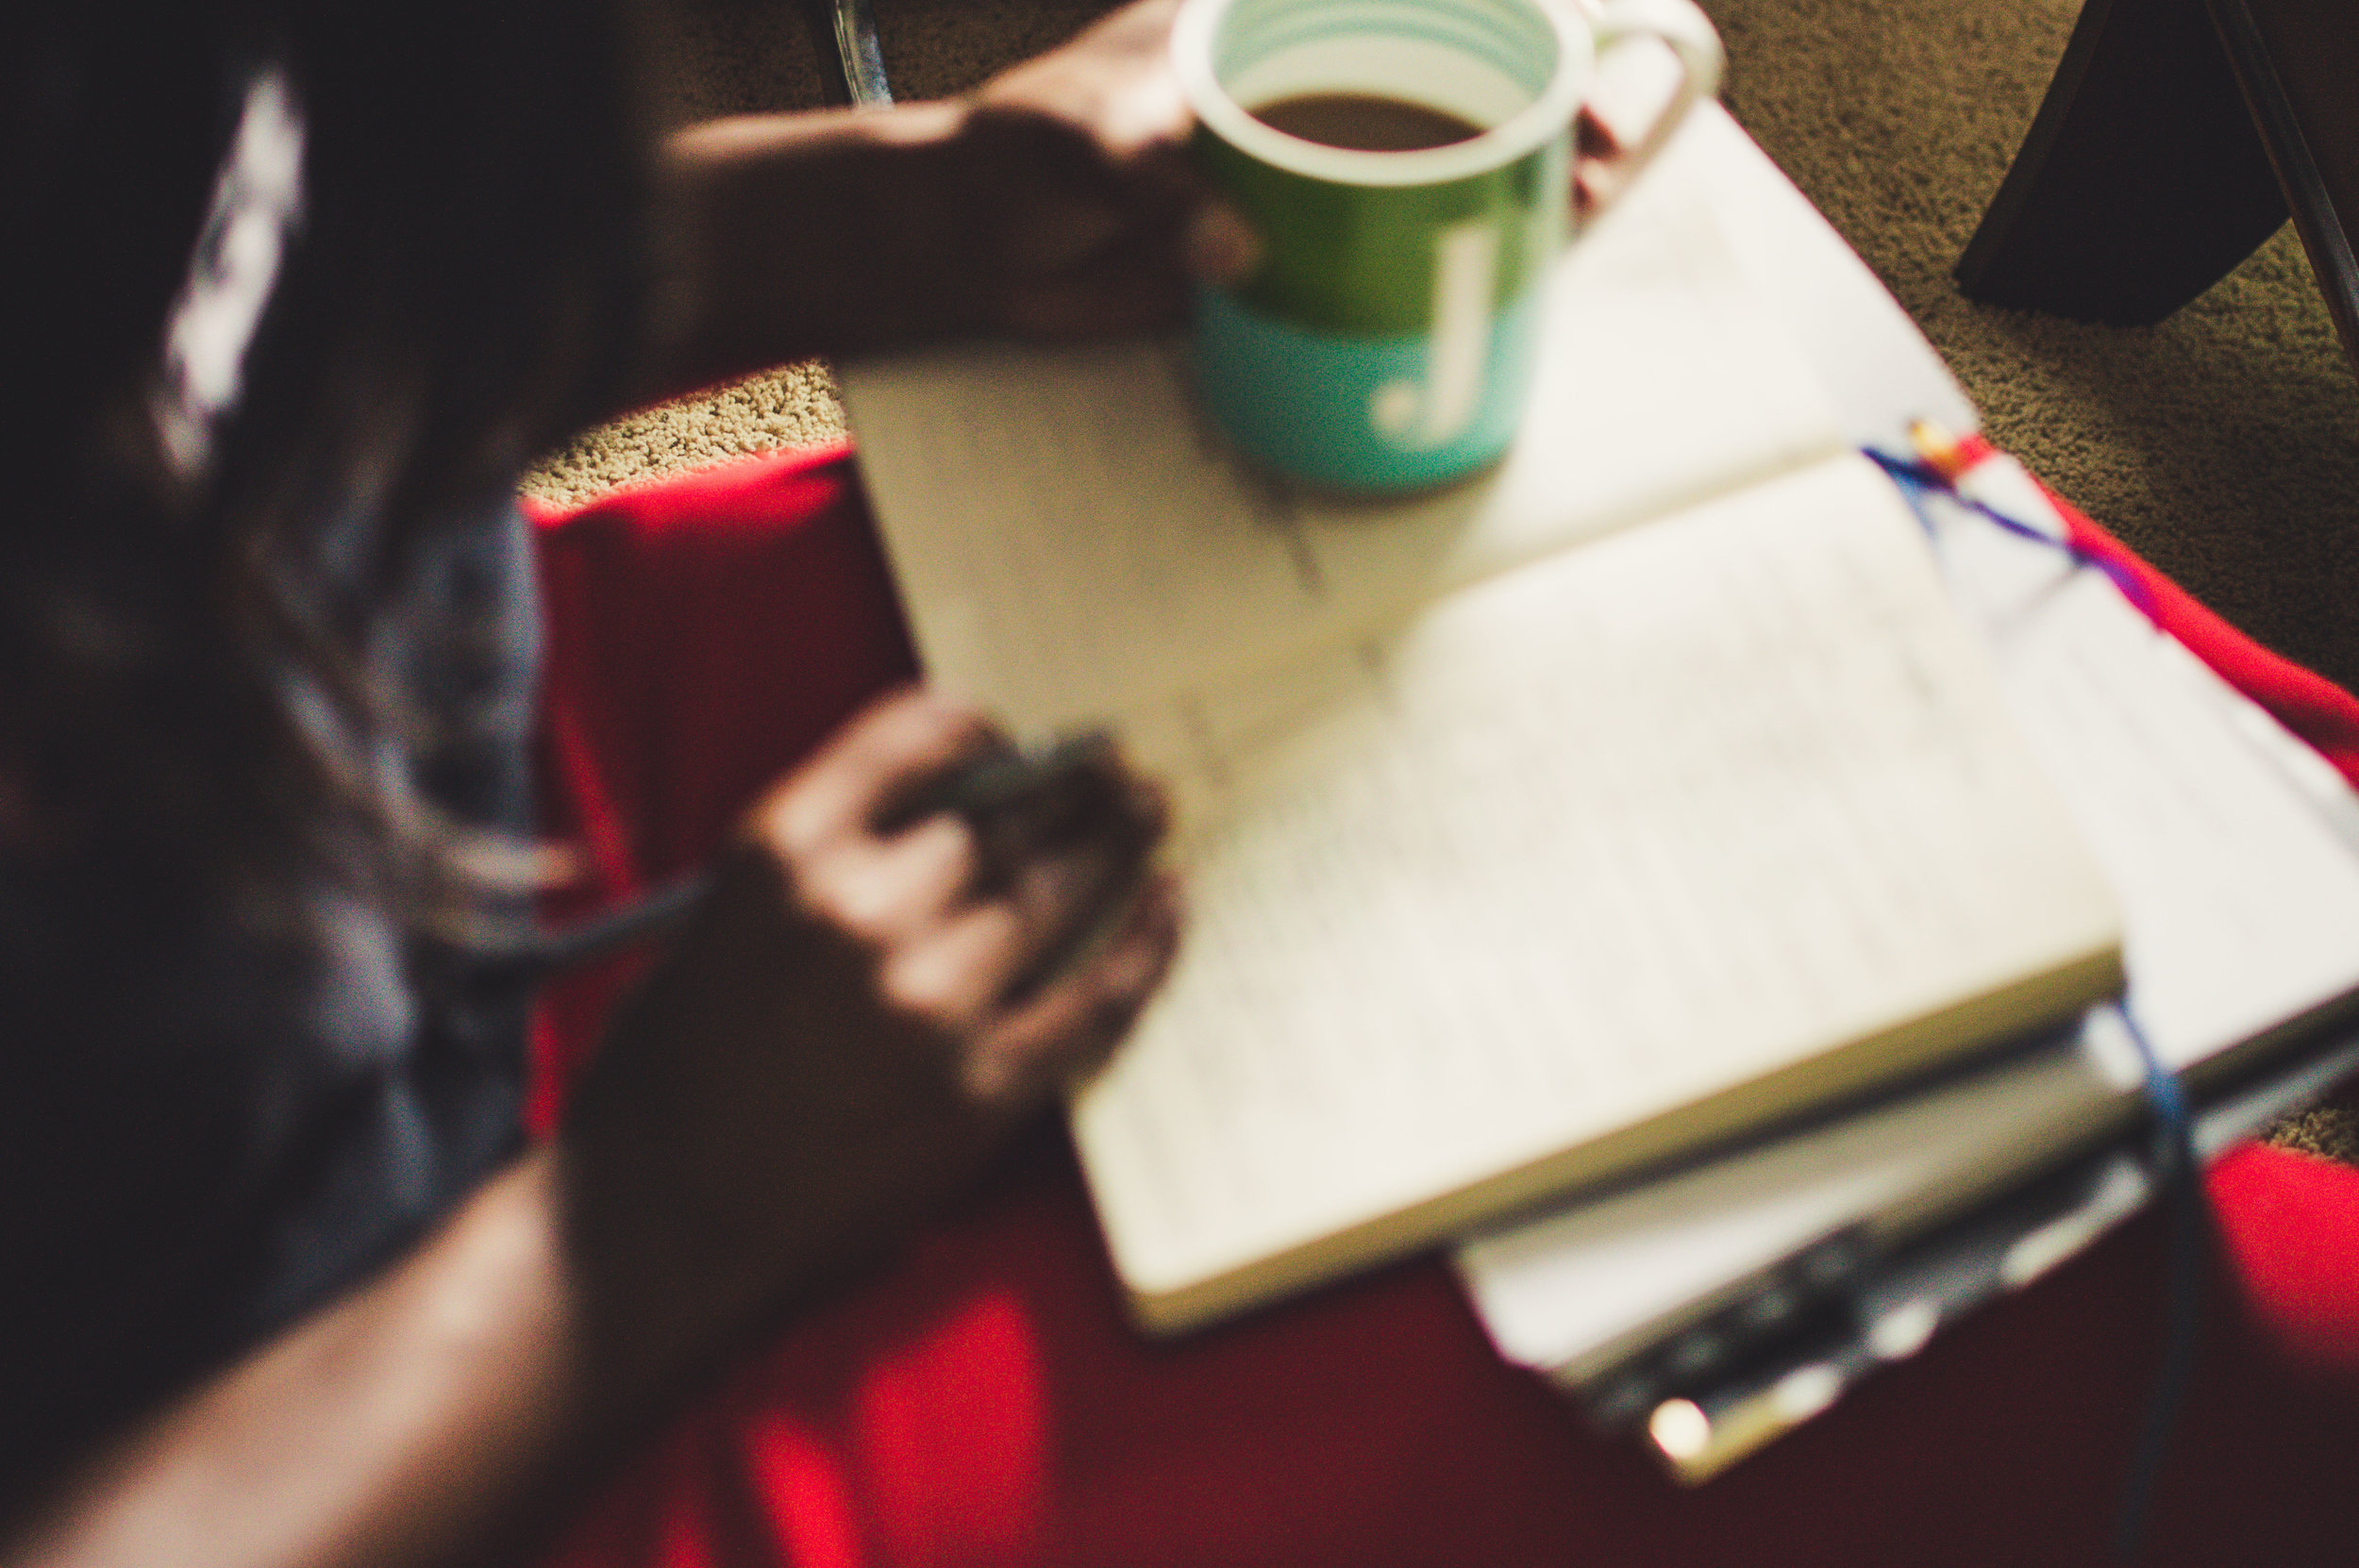 Goal Setting - Tips to Set and Achieve Even Your Wildest Dreams